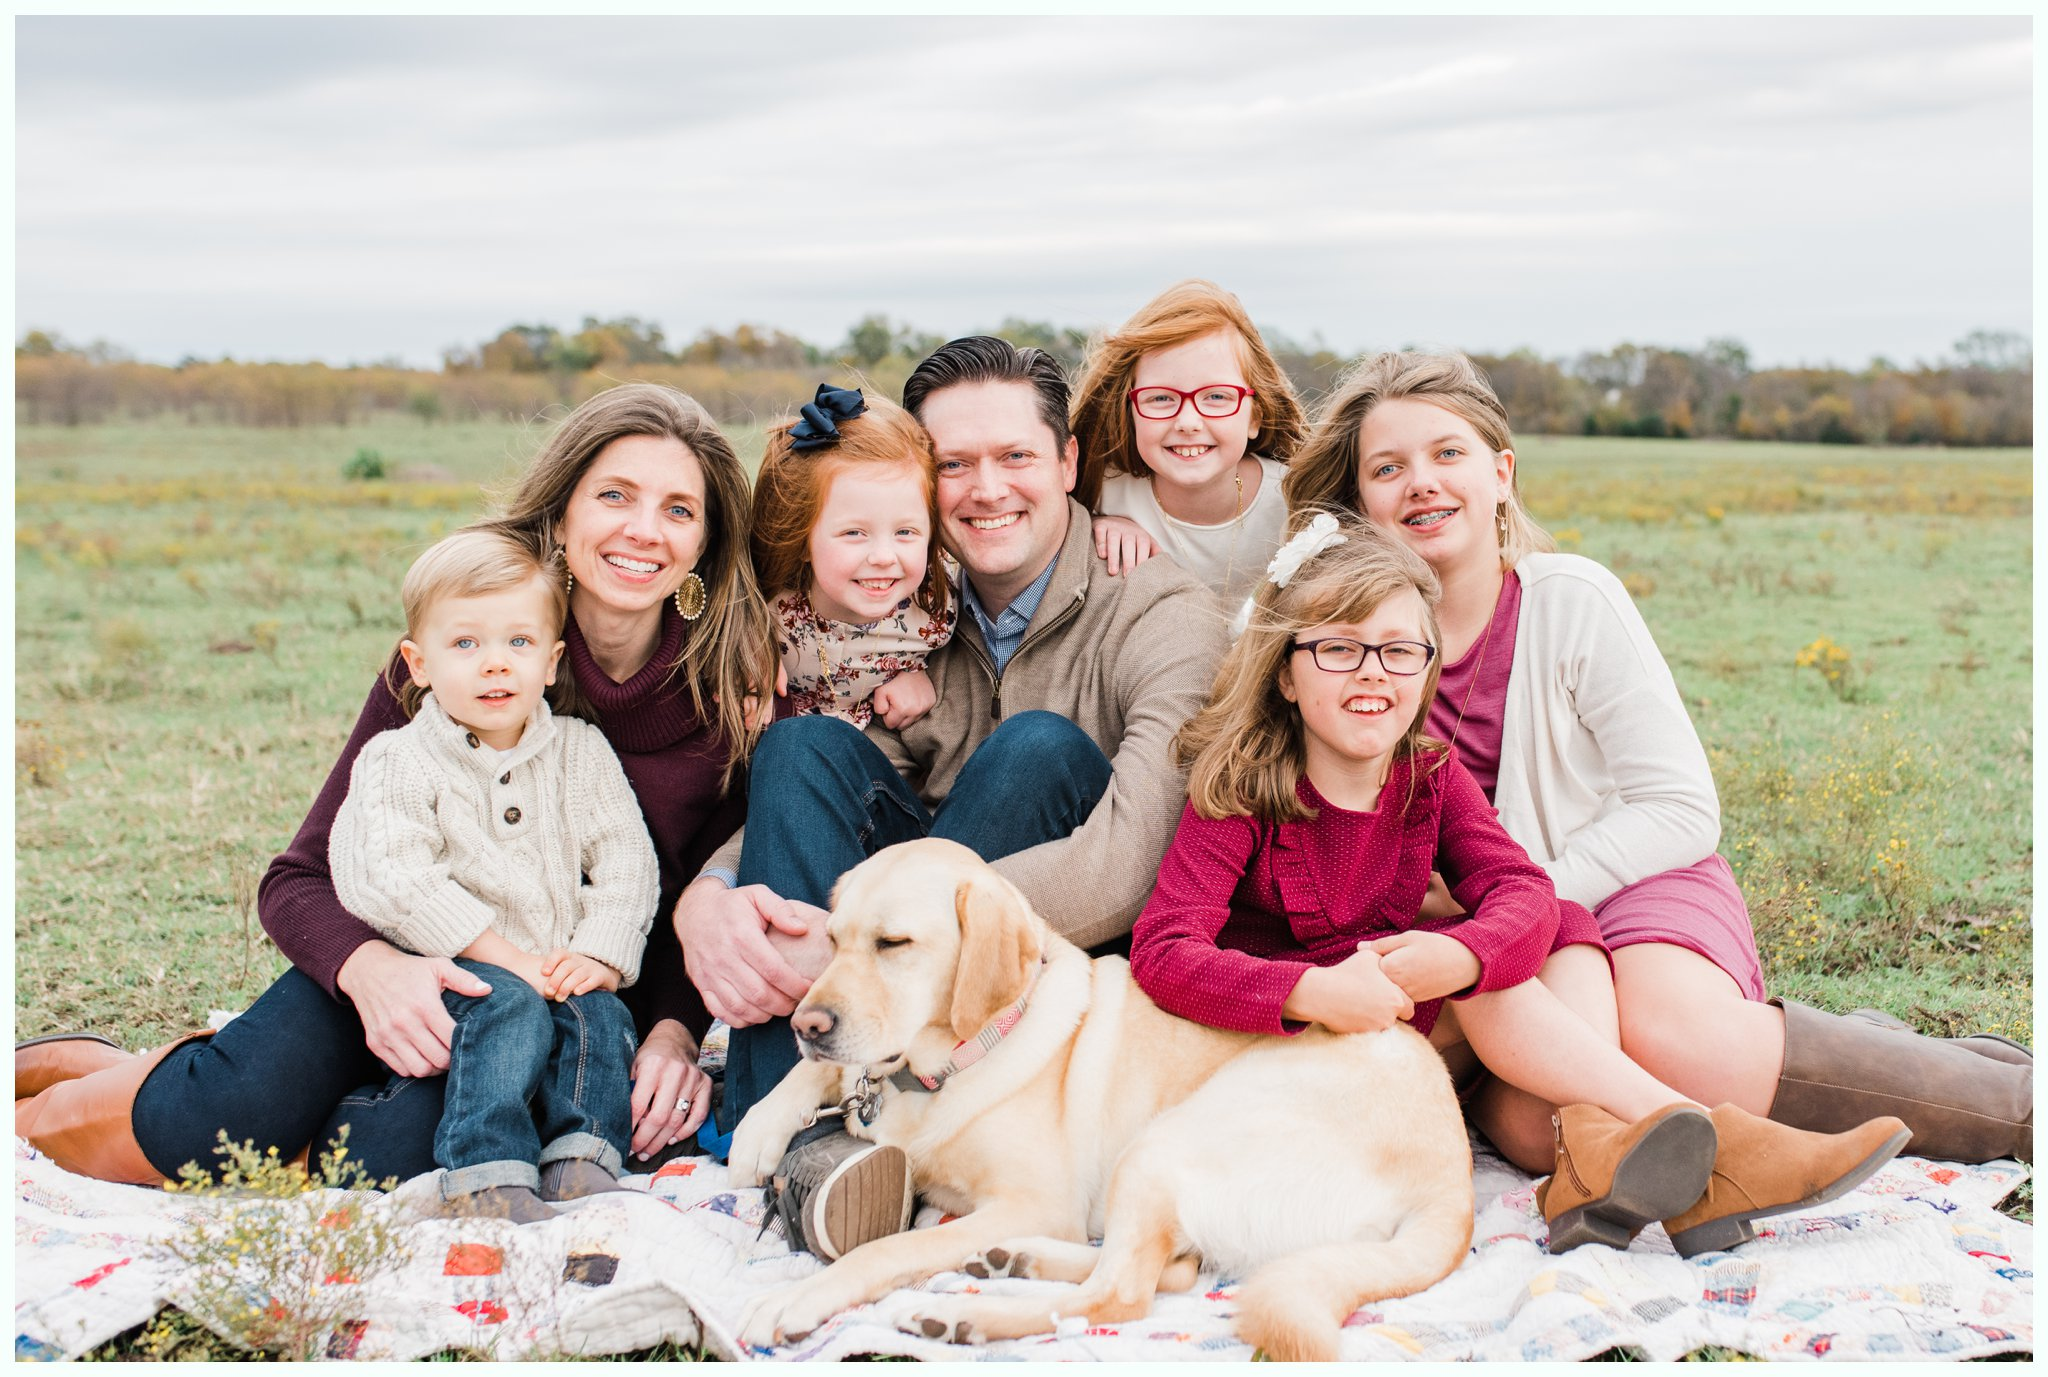 SHERMANFAMILYSESSION_3217.jpg